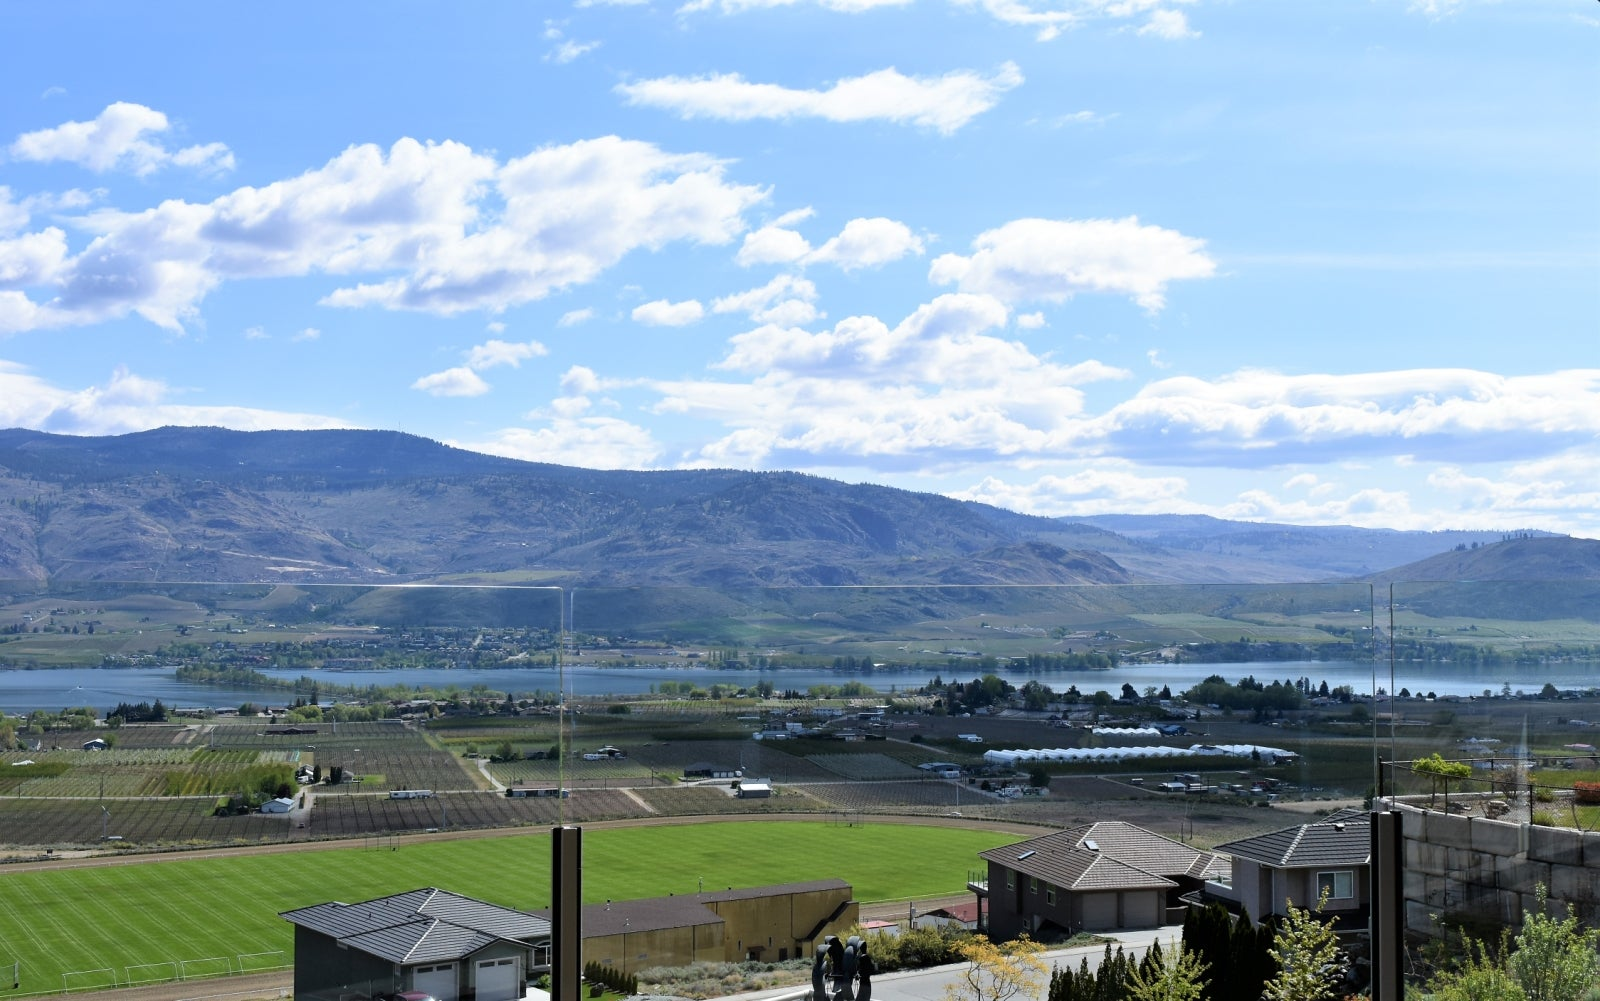 11715 Olympic View Drive - Osoyoos Single Family for sale, 4 Bedrooms (176846) #13